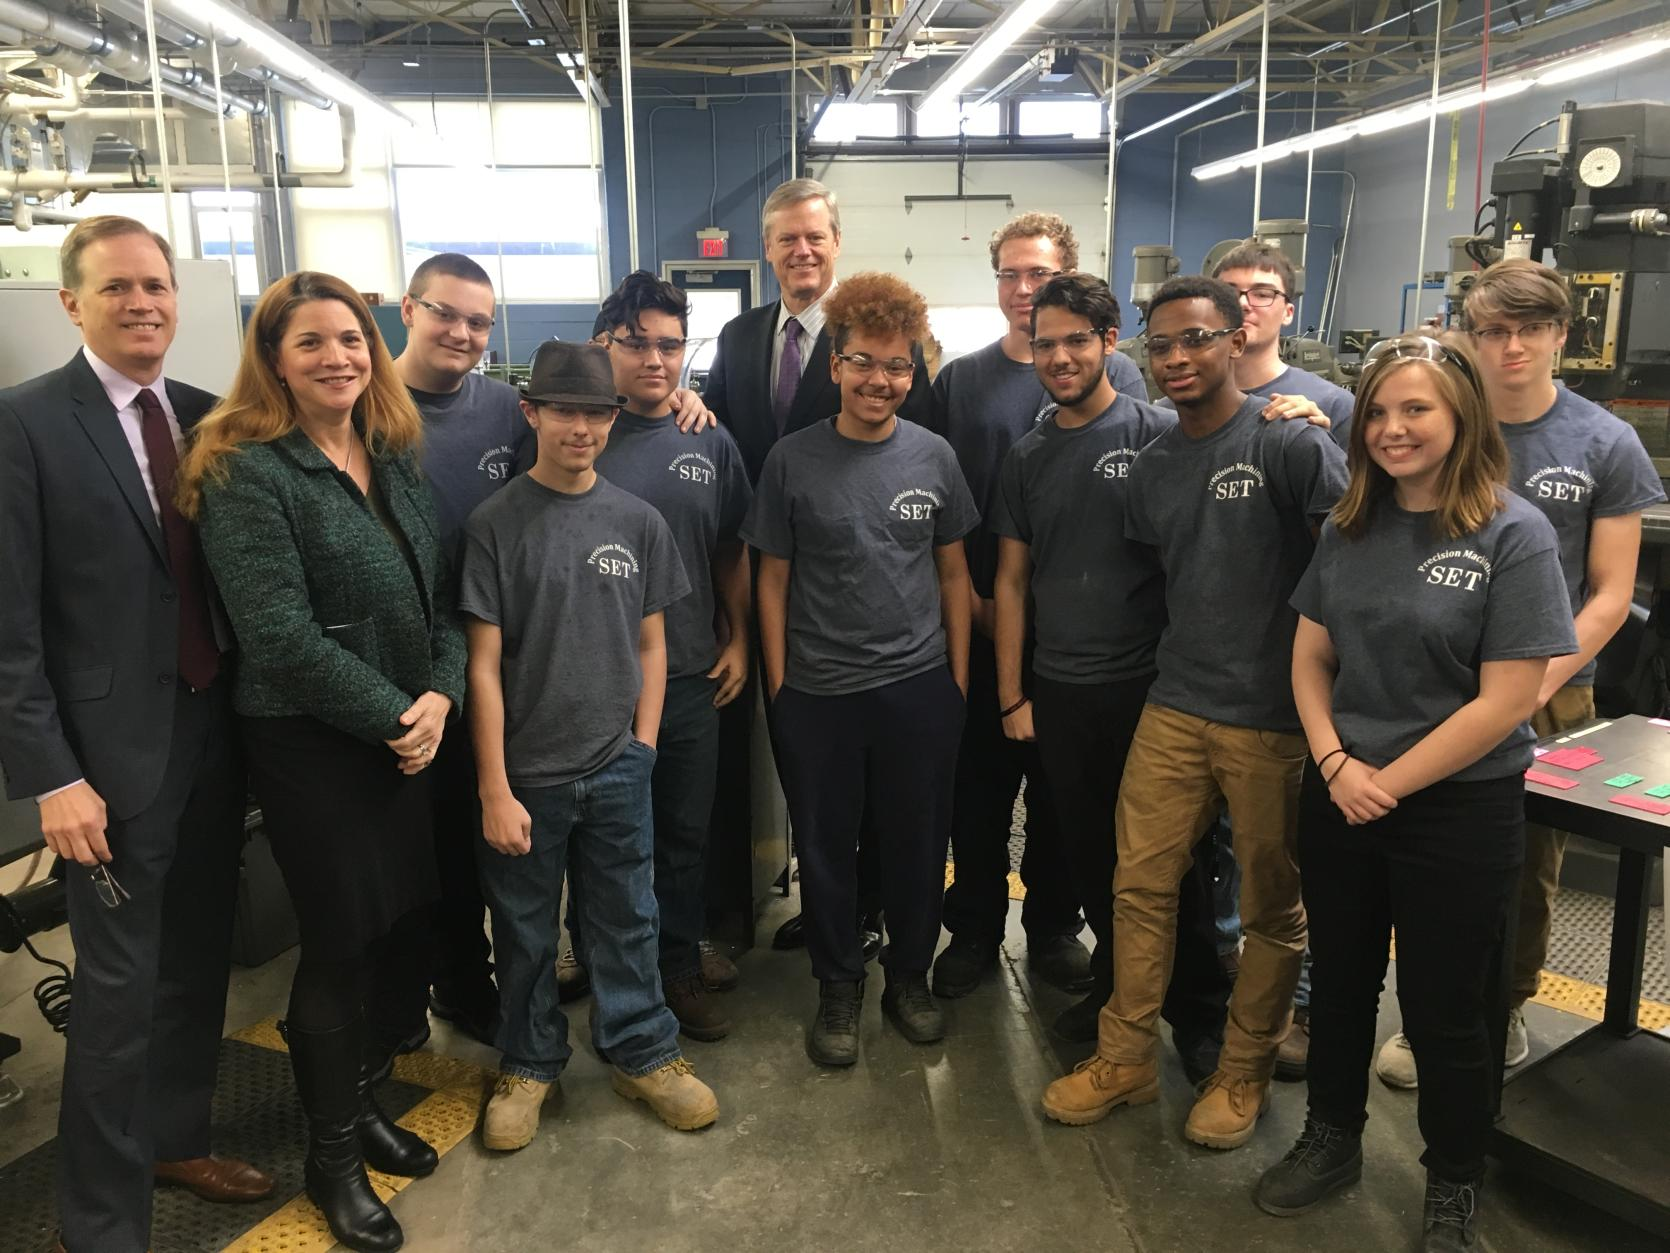 Governor Baker, Secretary Peyser, and Secretary Acosta with Southeastern Regional Vocational Technical High School students.